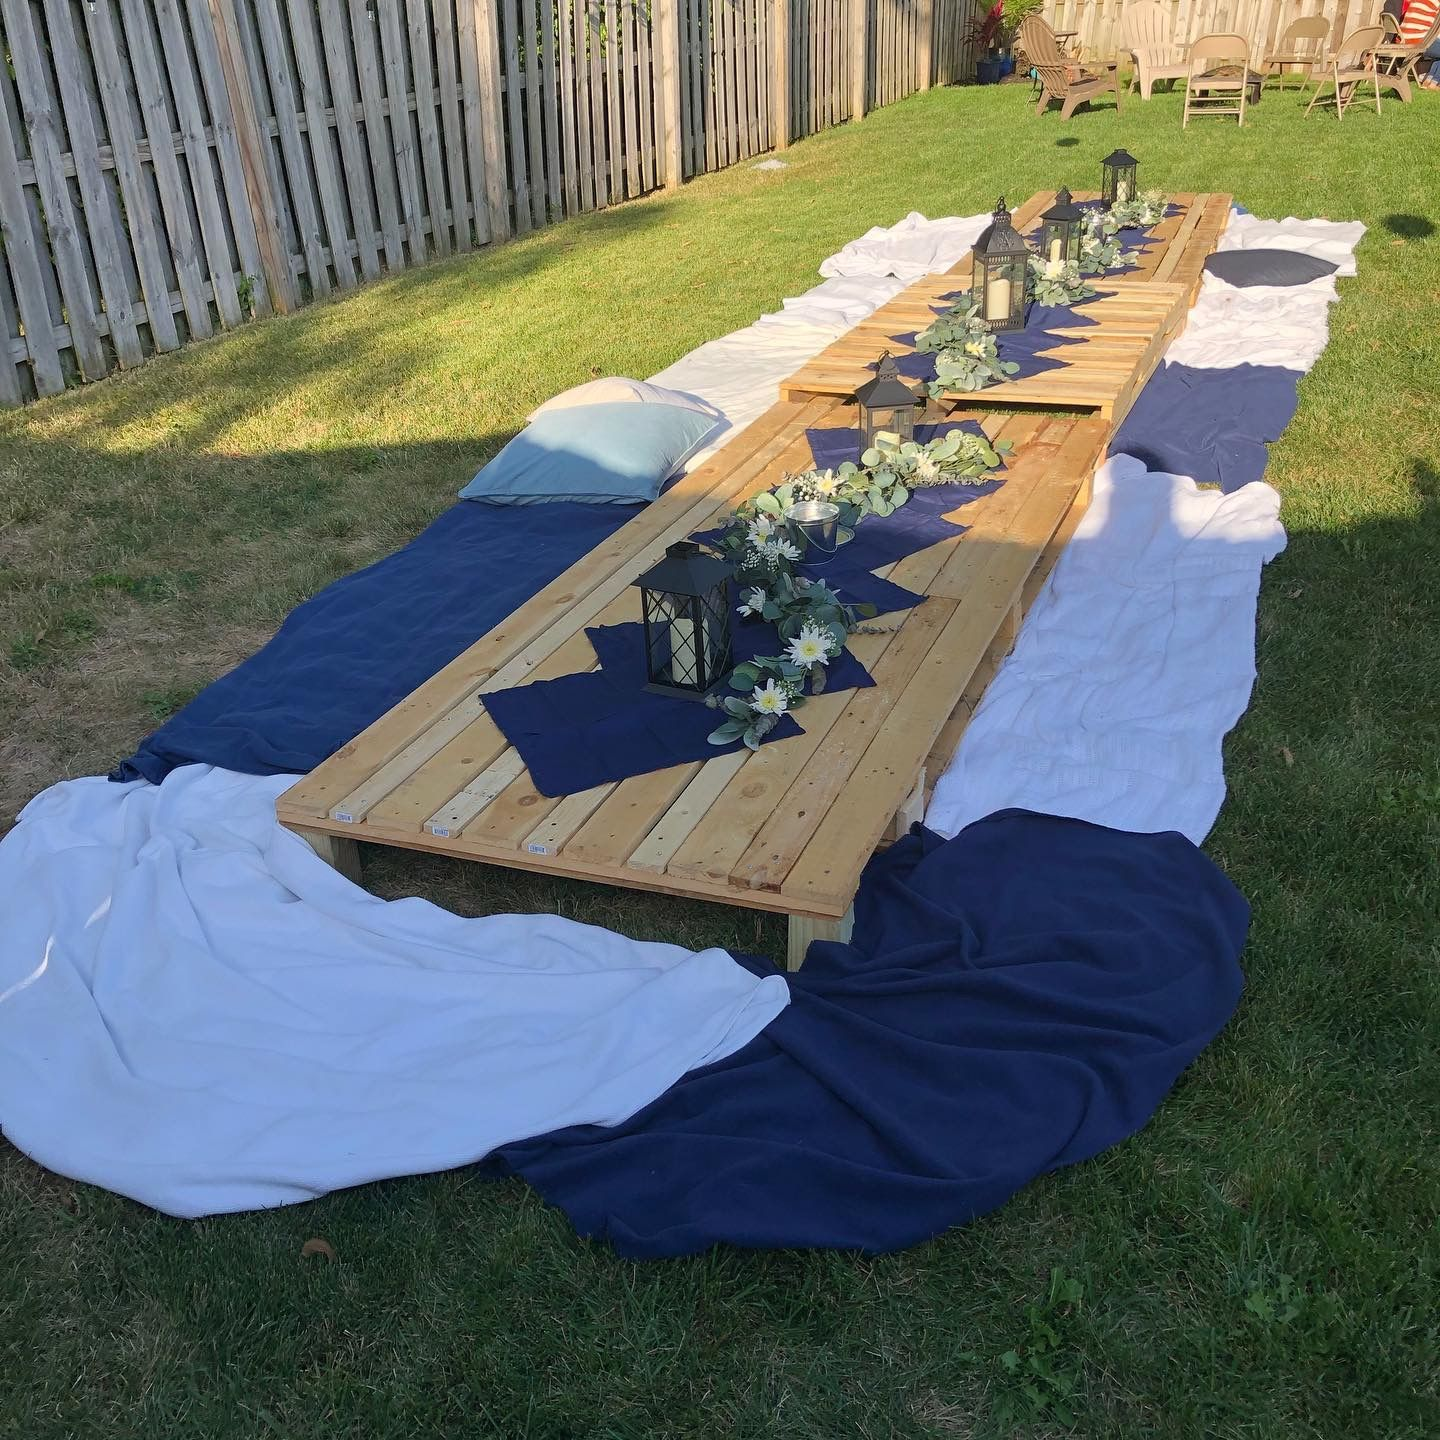 Pin by Datha Nix on Party Planning (With images)   Outdoor ...